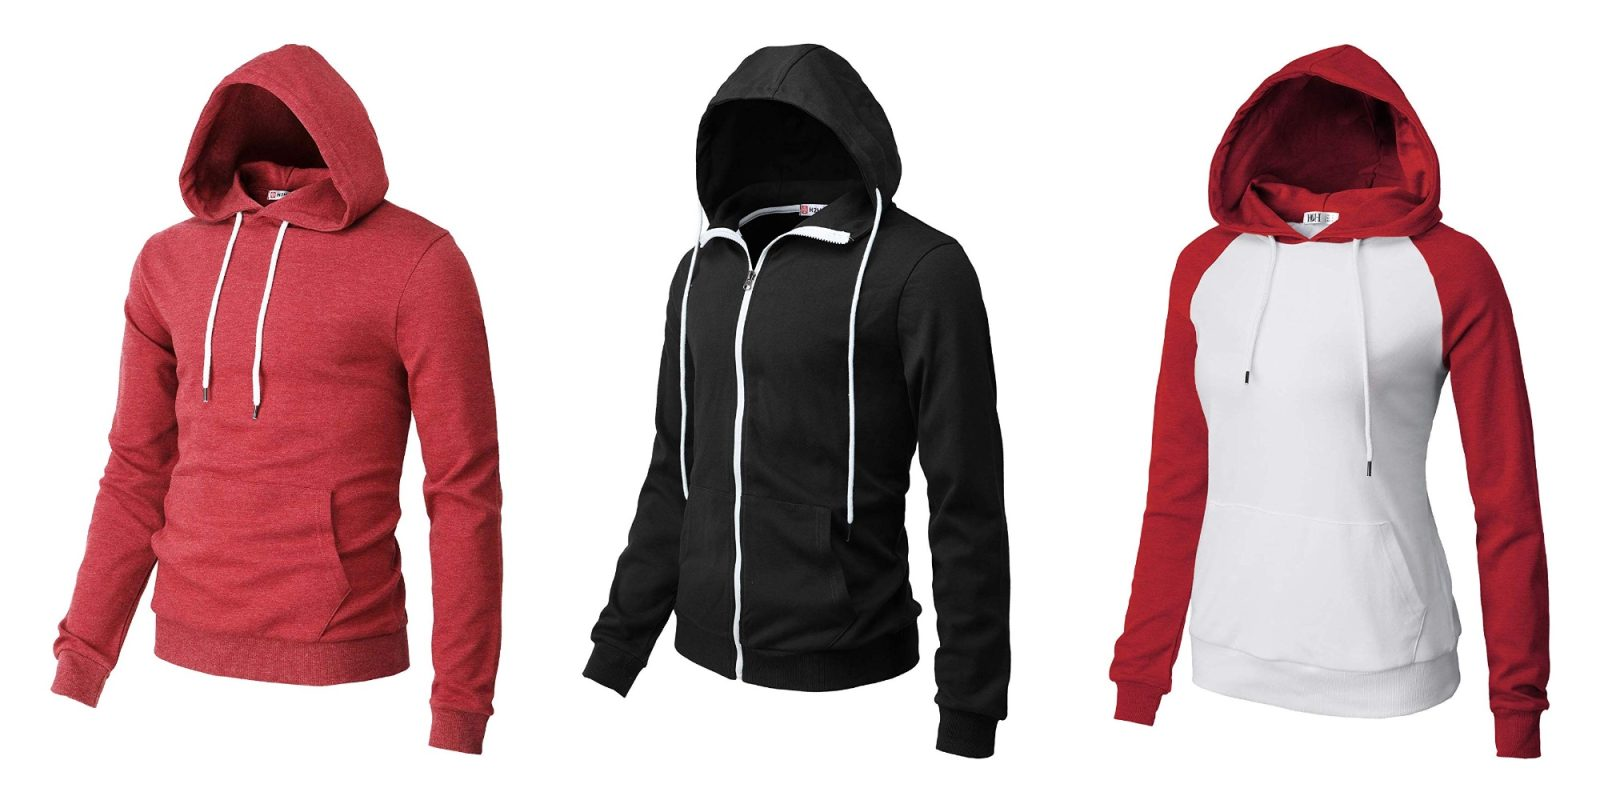 Today only, Amazon discounts H2H men's and women's hoodies from under $10